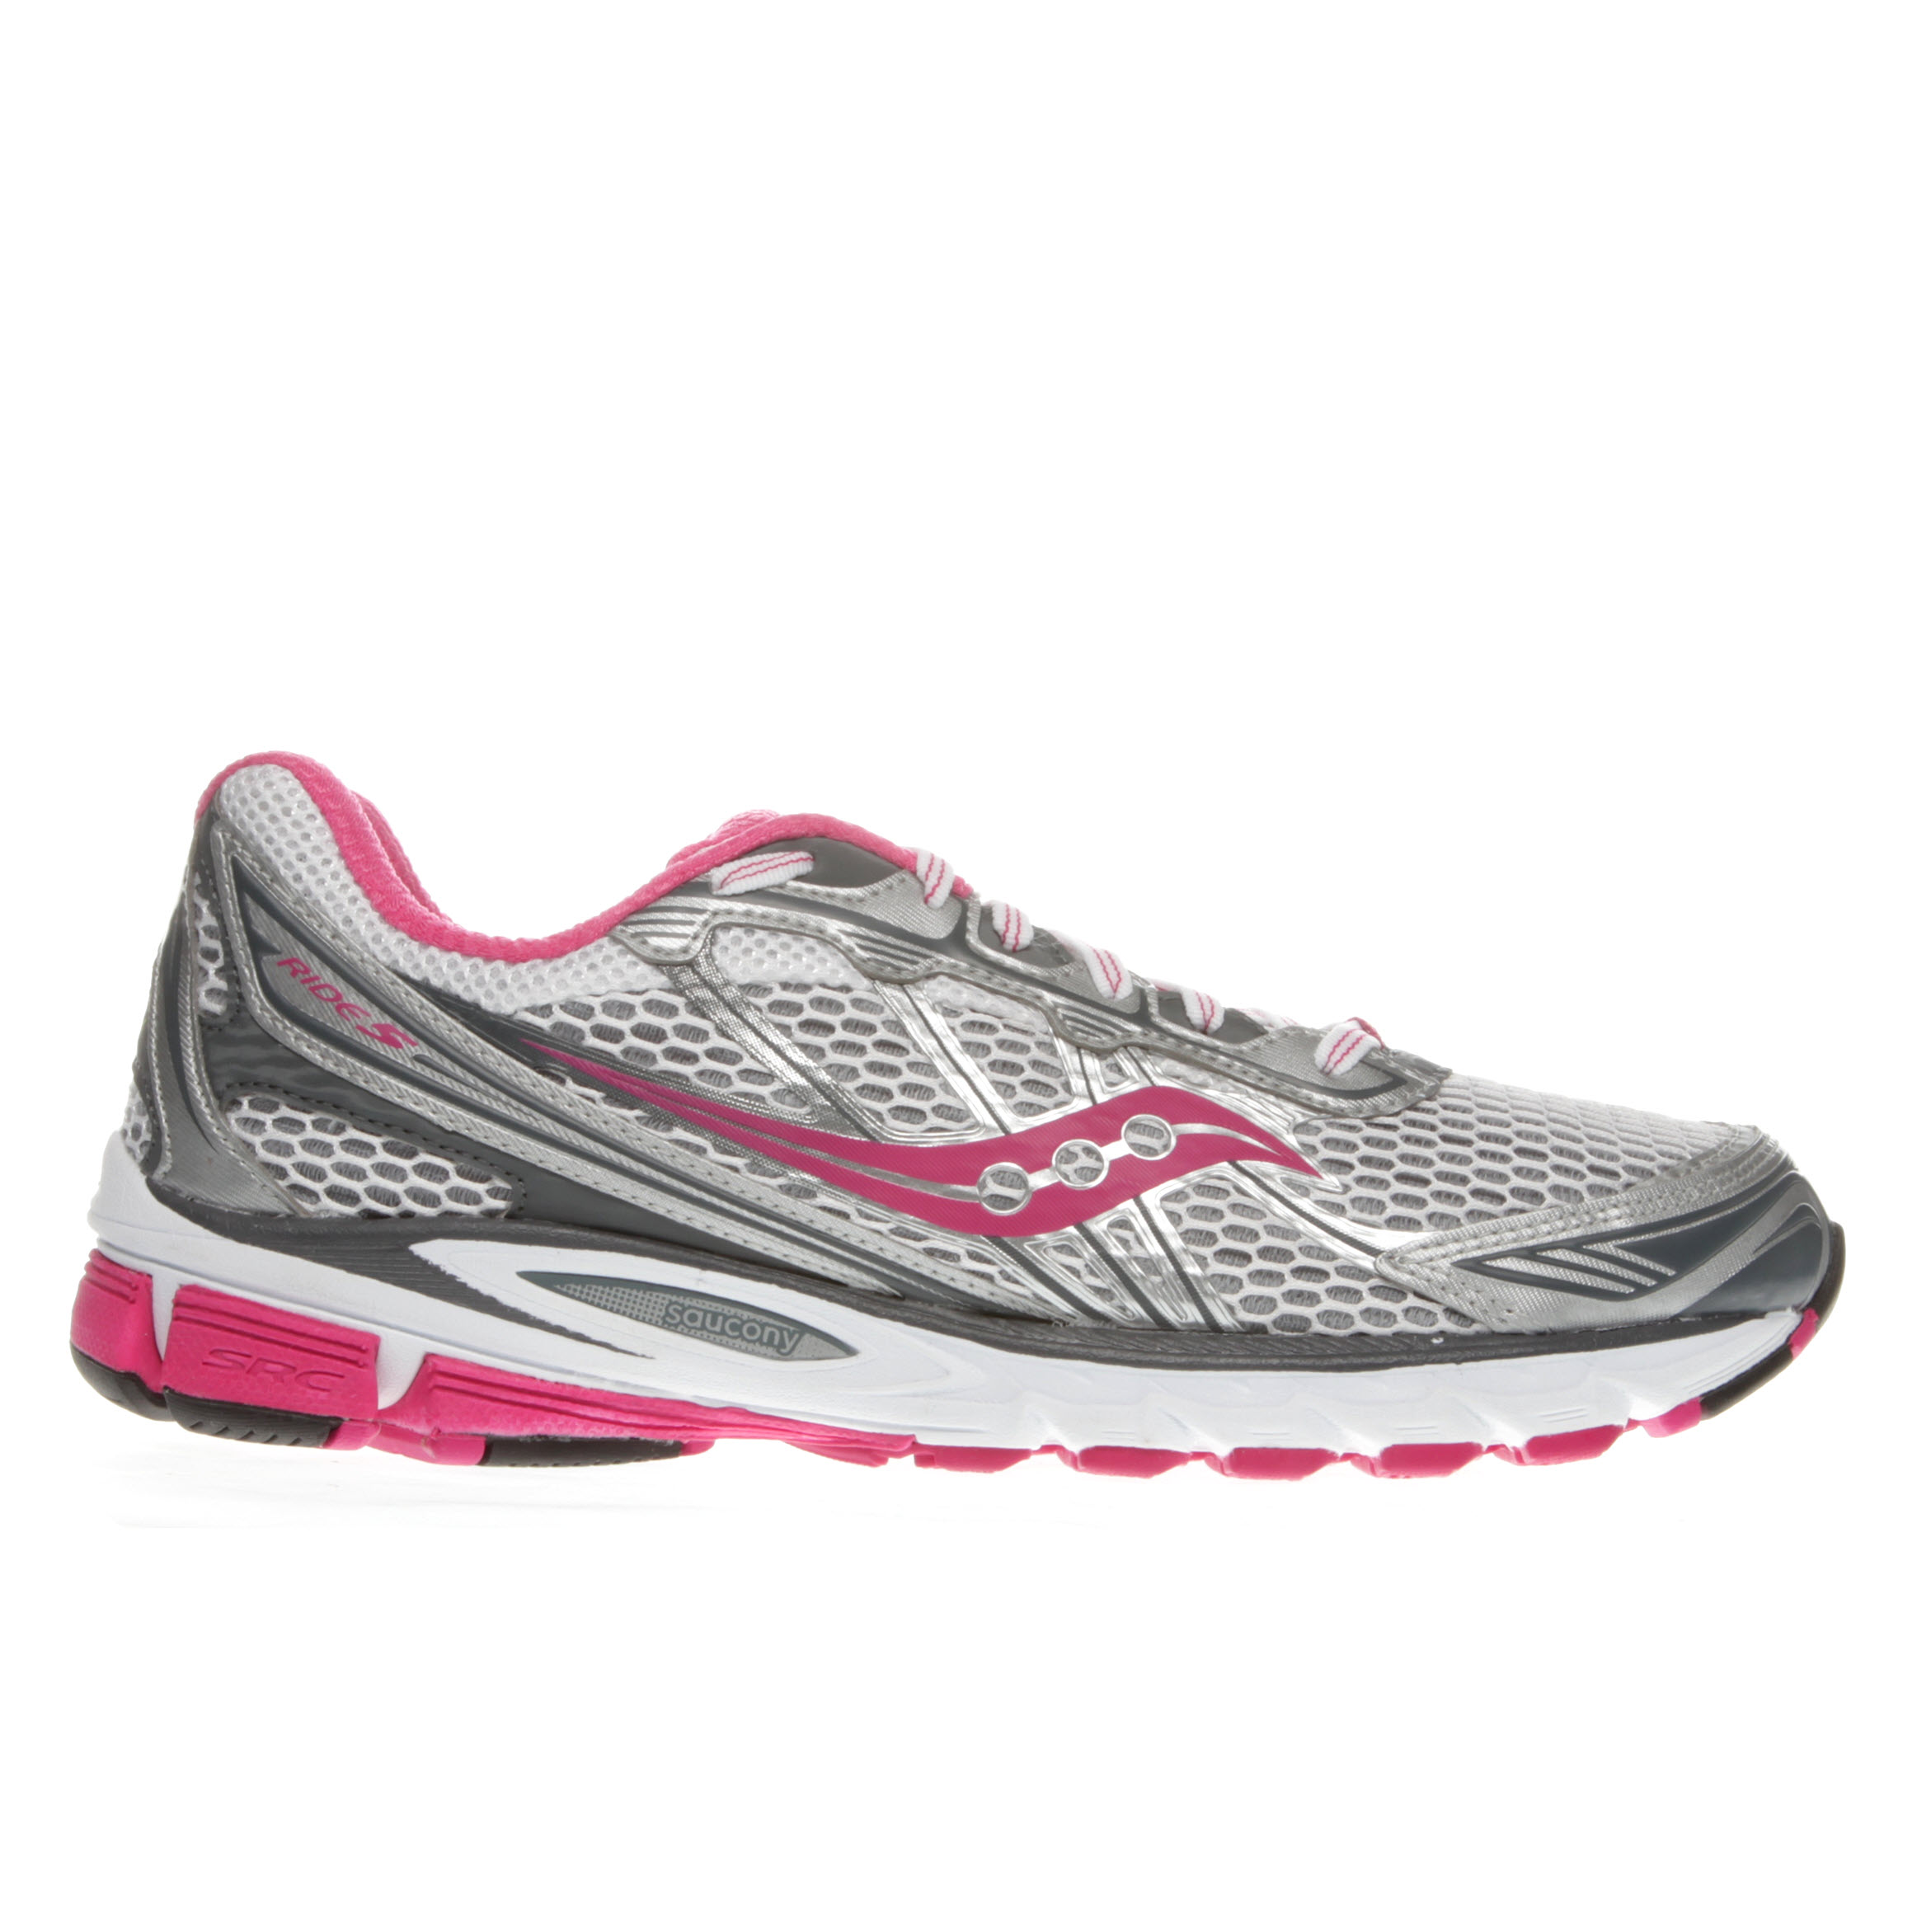 Saucony Progrid Ride 5 Women's Running Shoes 8.5